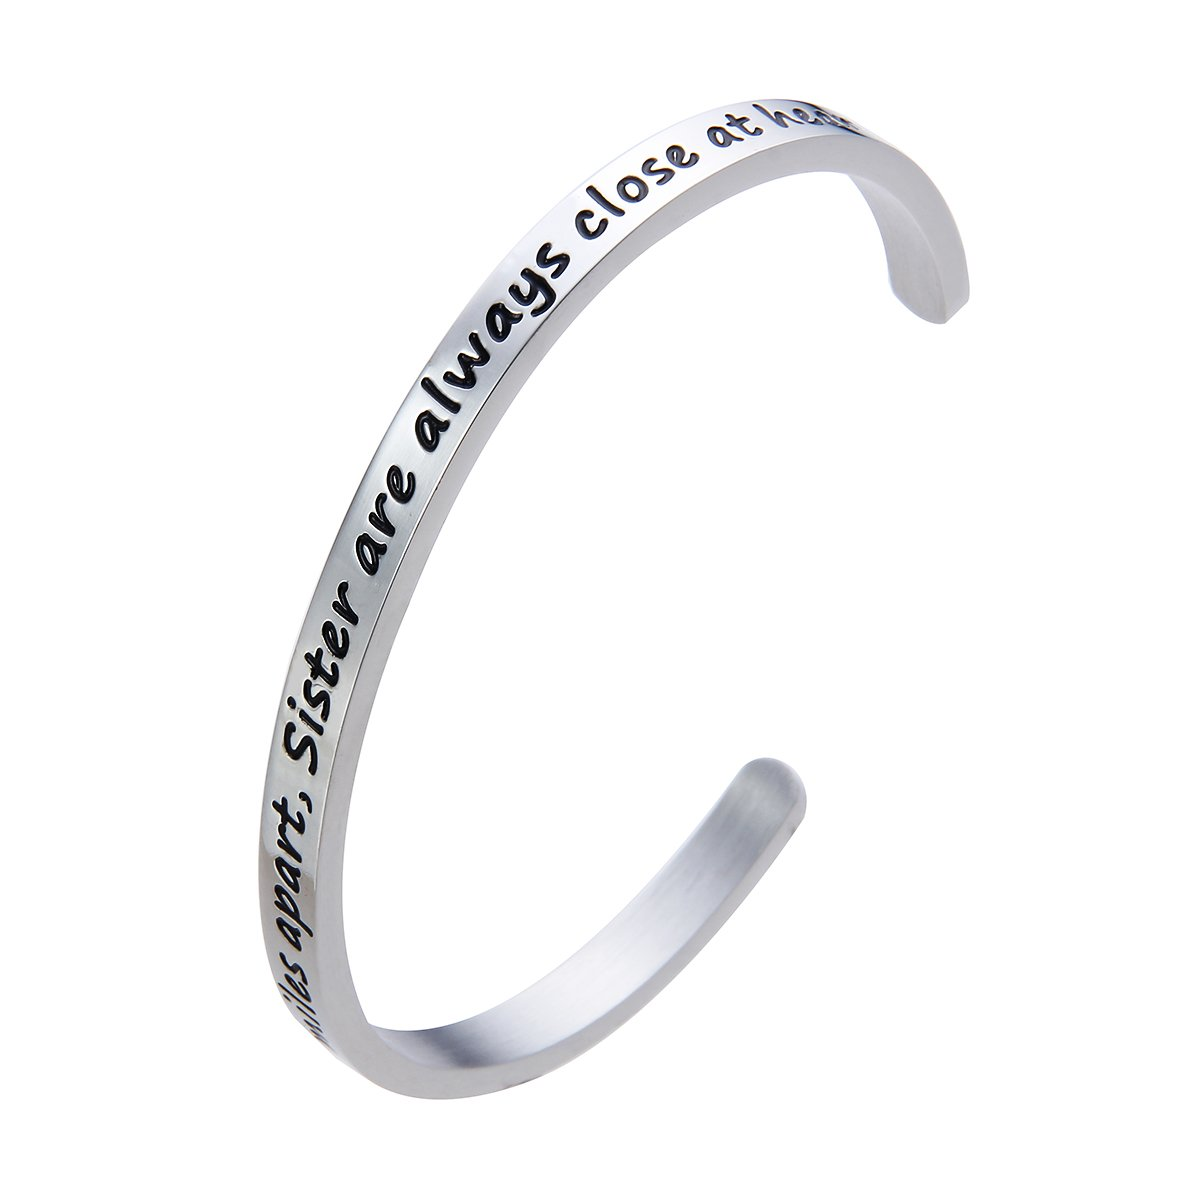 Meibai Maid of Honor Bracelet Stainless Steel Message Cuff Bangle Wedding Gift for Bridesmaid Sister Chenzhou Meibai Jewelry Co. Ltd B0756GYFDT_US